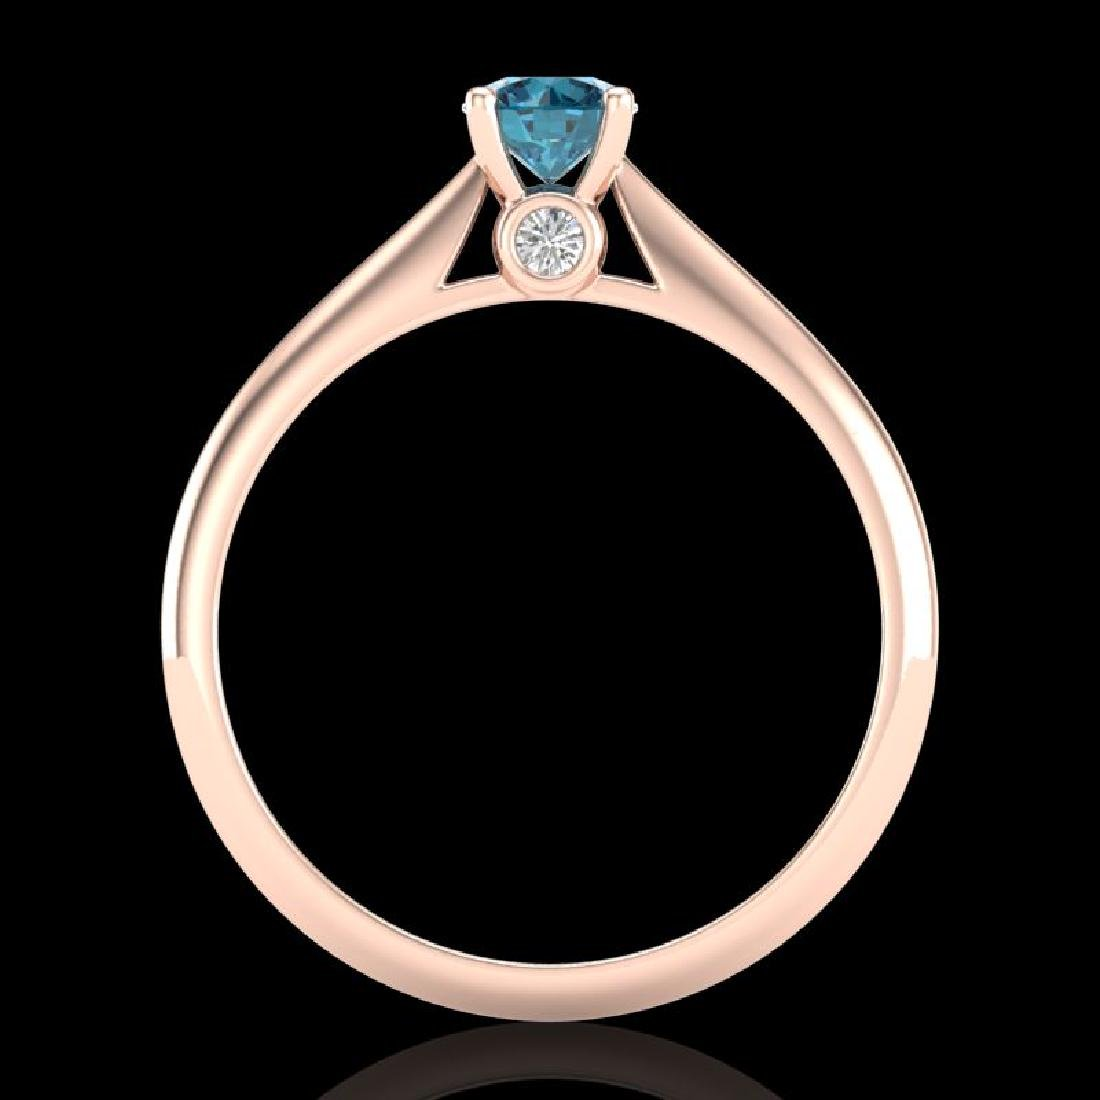 0.4 CTW Intense Blue Diamond Solitaire Engagement Art - 3